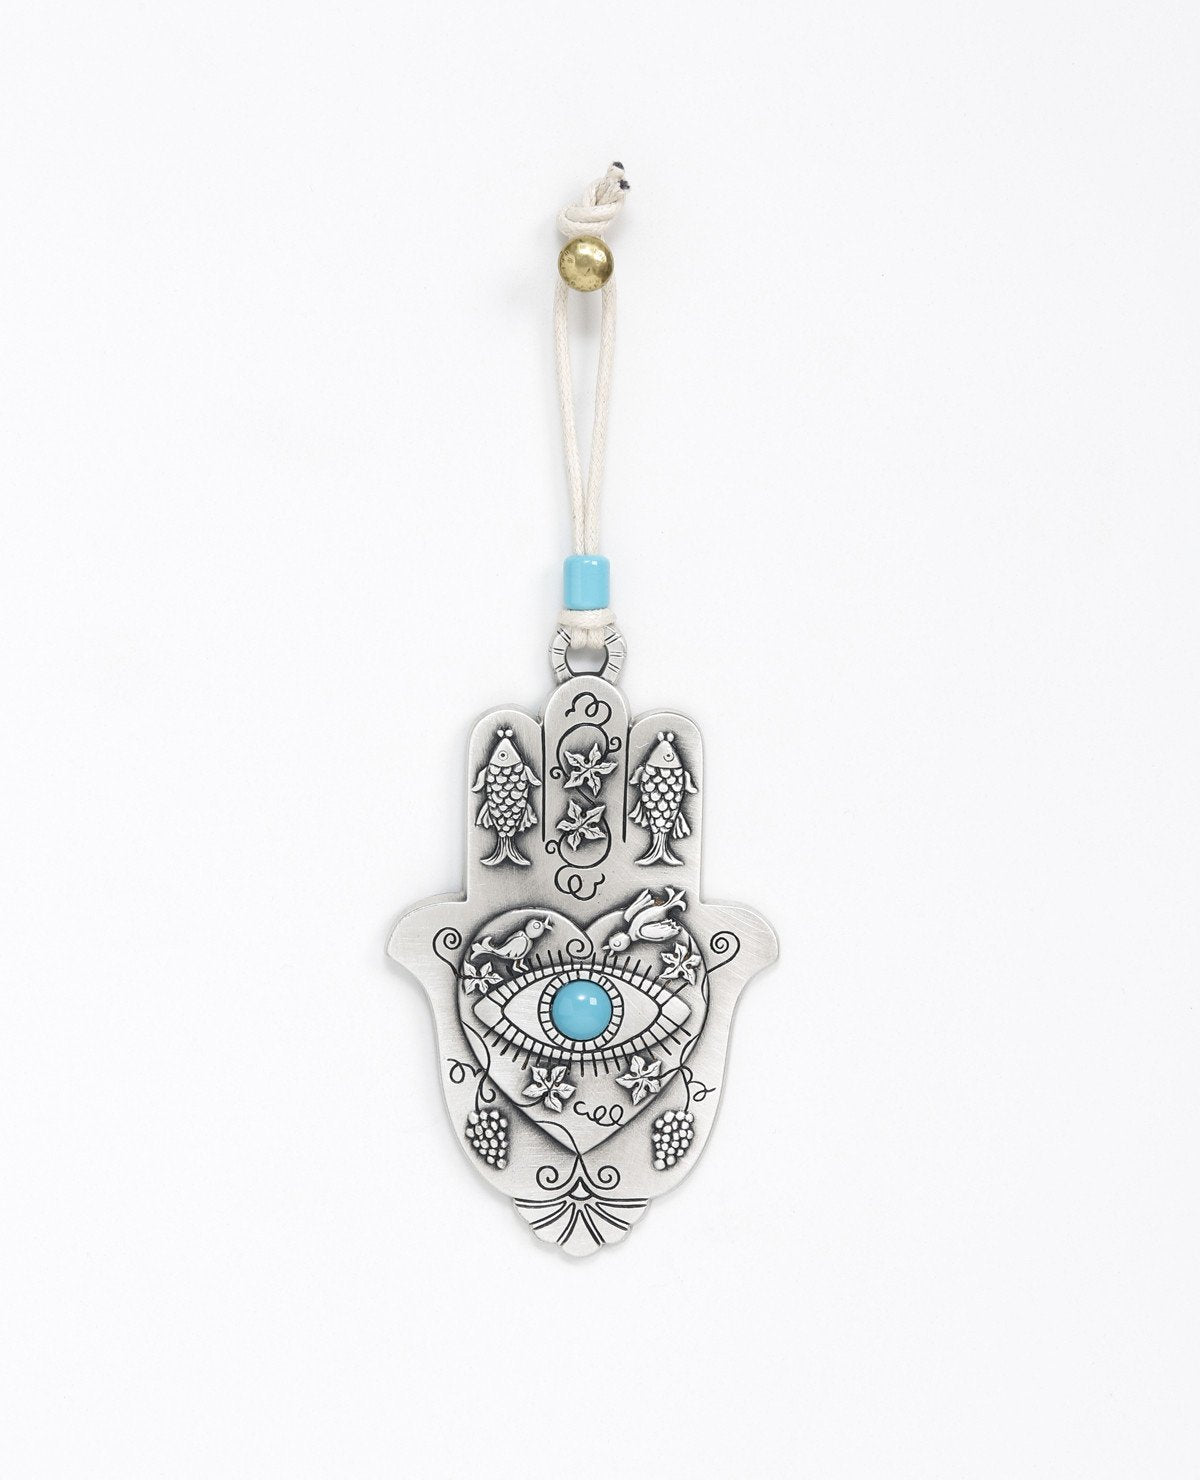 "A hanging Hamsa ornament packed with goodness! The Hamsa is coated in sterling silver and comes with a natural colored faux leather string for hanging, decorated by a turquoise bead. At the center of the Hamsa is a big heart with an embossed eye inside embedded with a turquoise colored stone (against the ""evil eye""). Above the eye are chirping birds (of peace and love). The Hamsa is decorated with embossed fish (for luck), as well as vine leaves and grape clusters (for abundance). What else could we ask for"